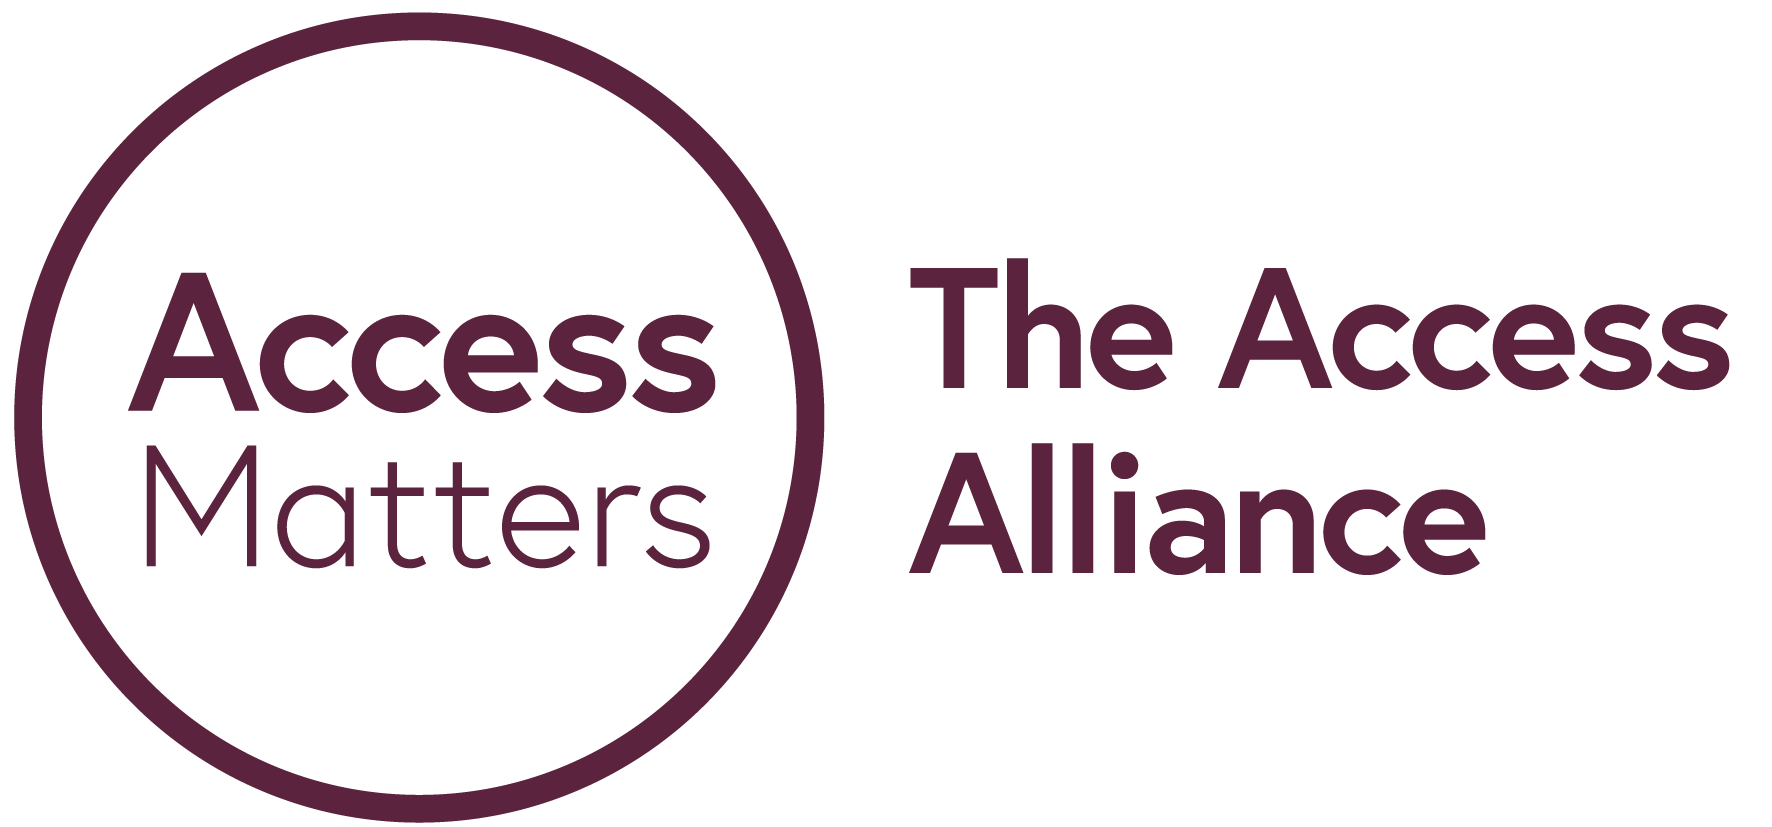 Access Matters, The Access Alliance purple logo